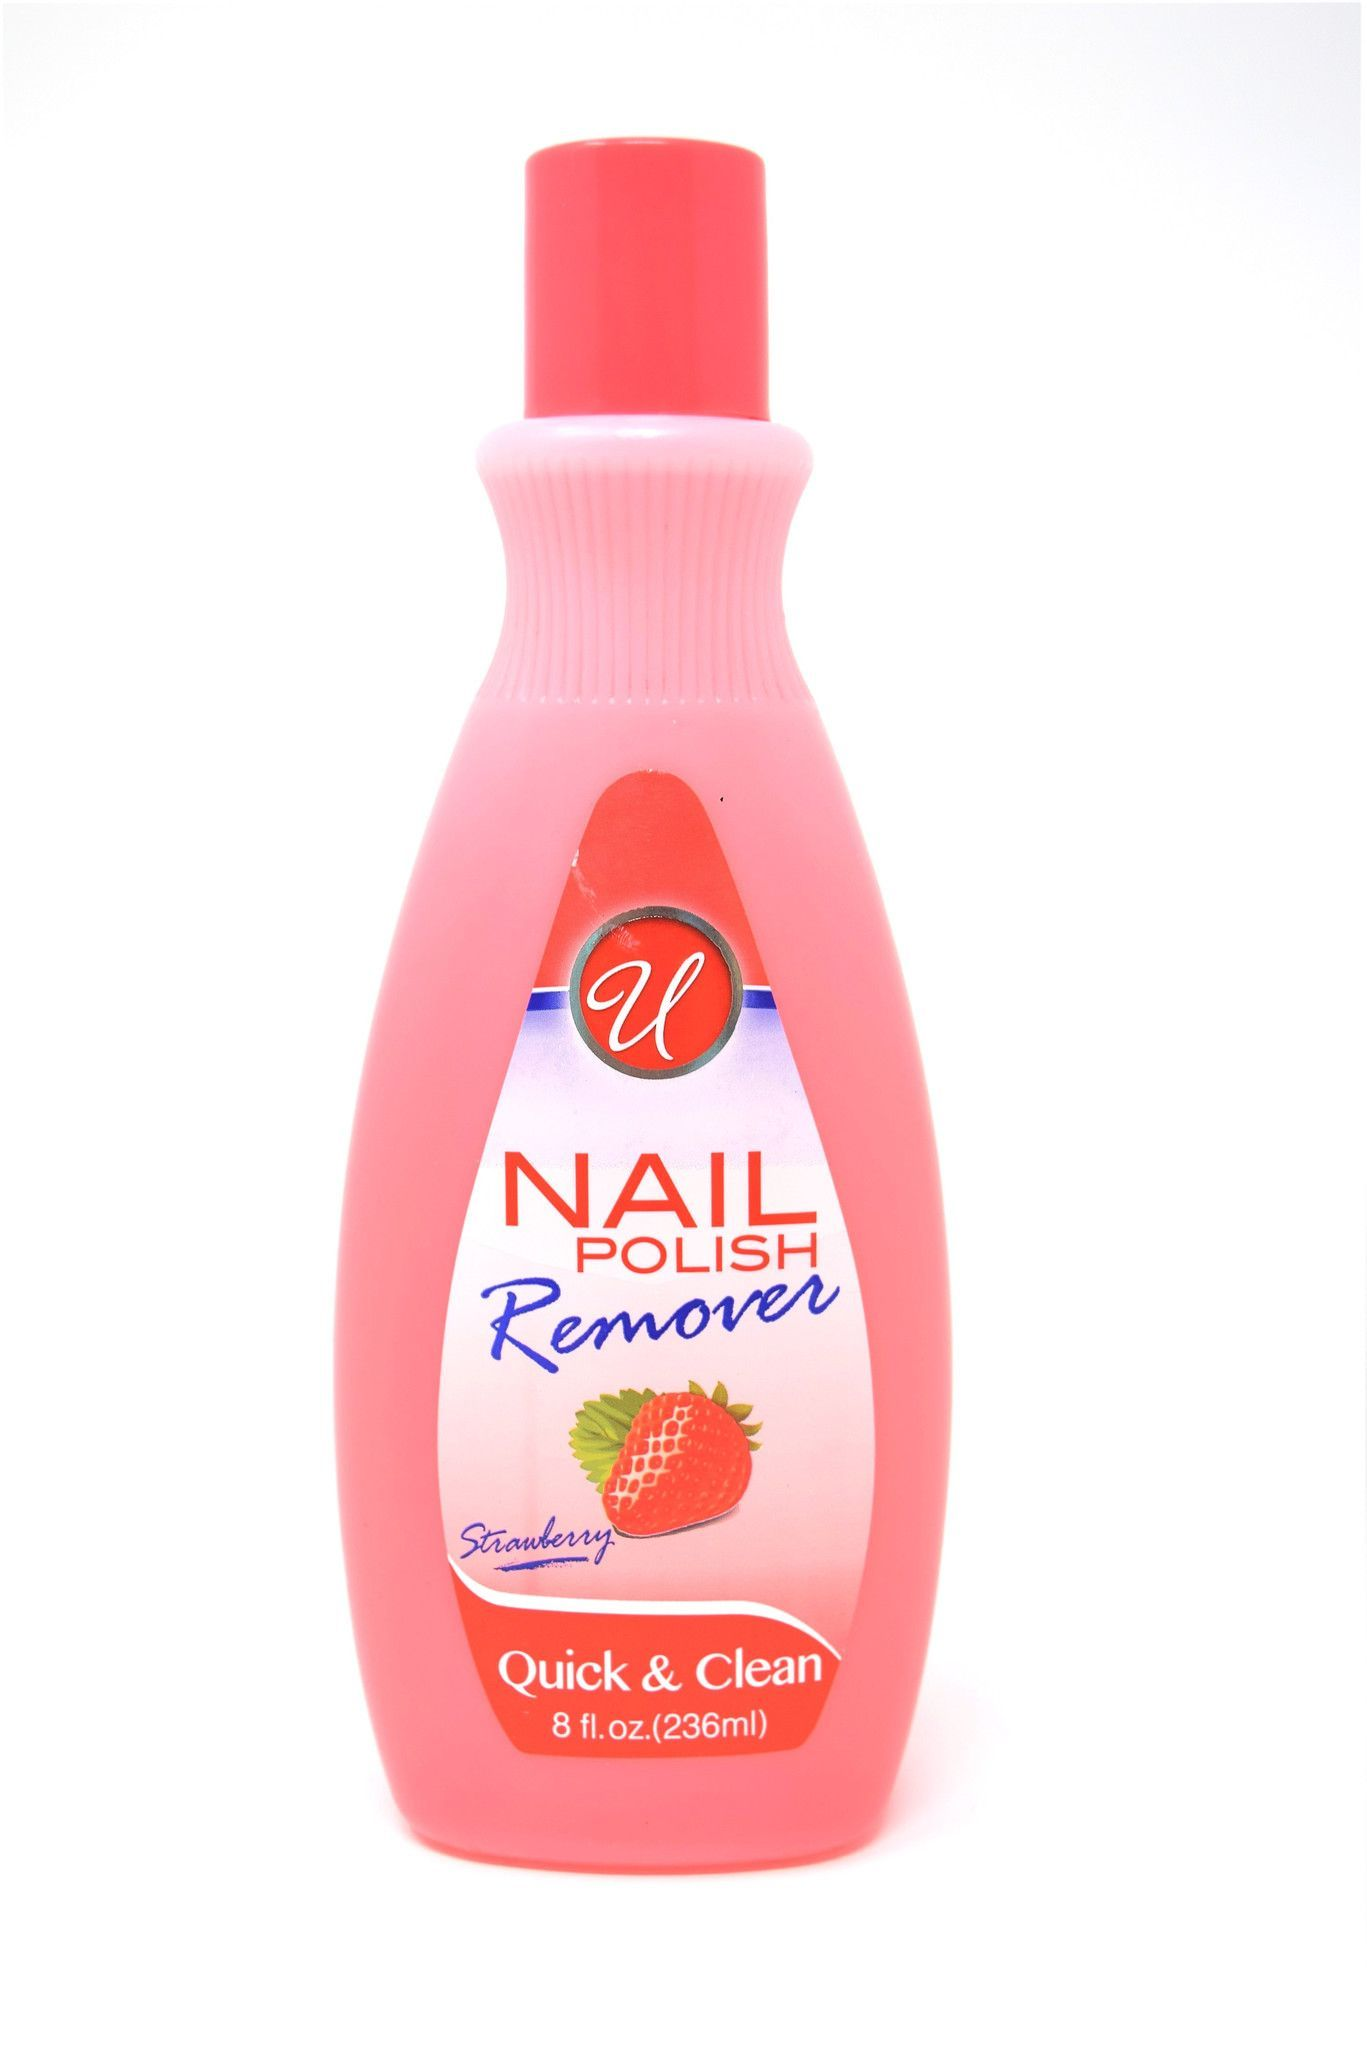 Universal Nail Polish Remover Strawberry Scented, 8 oz